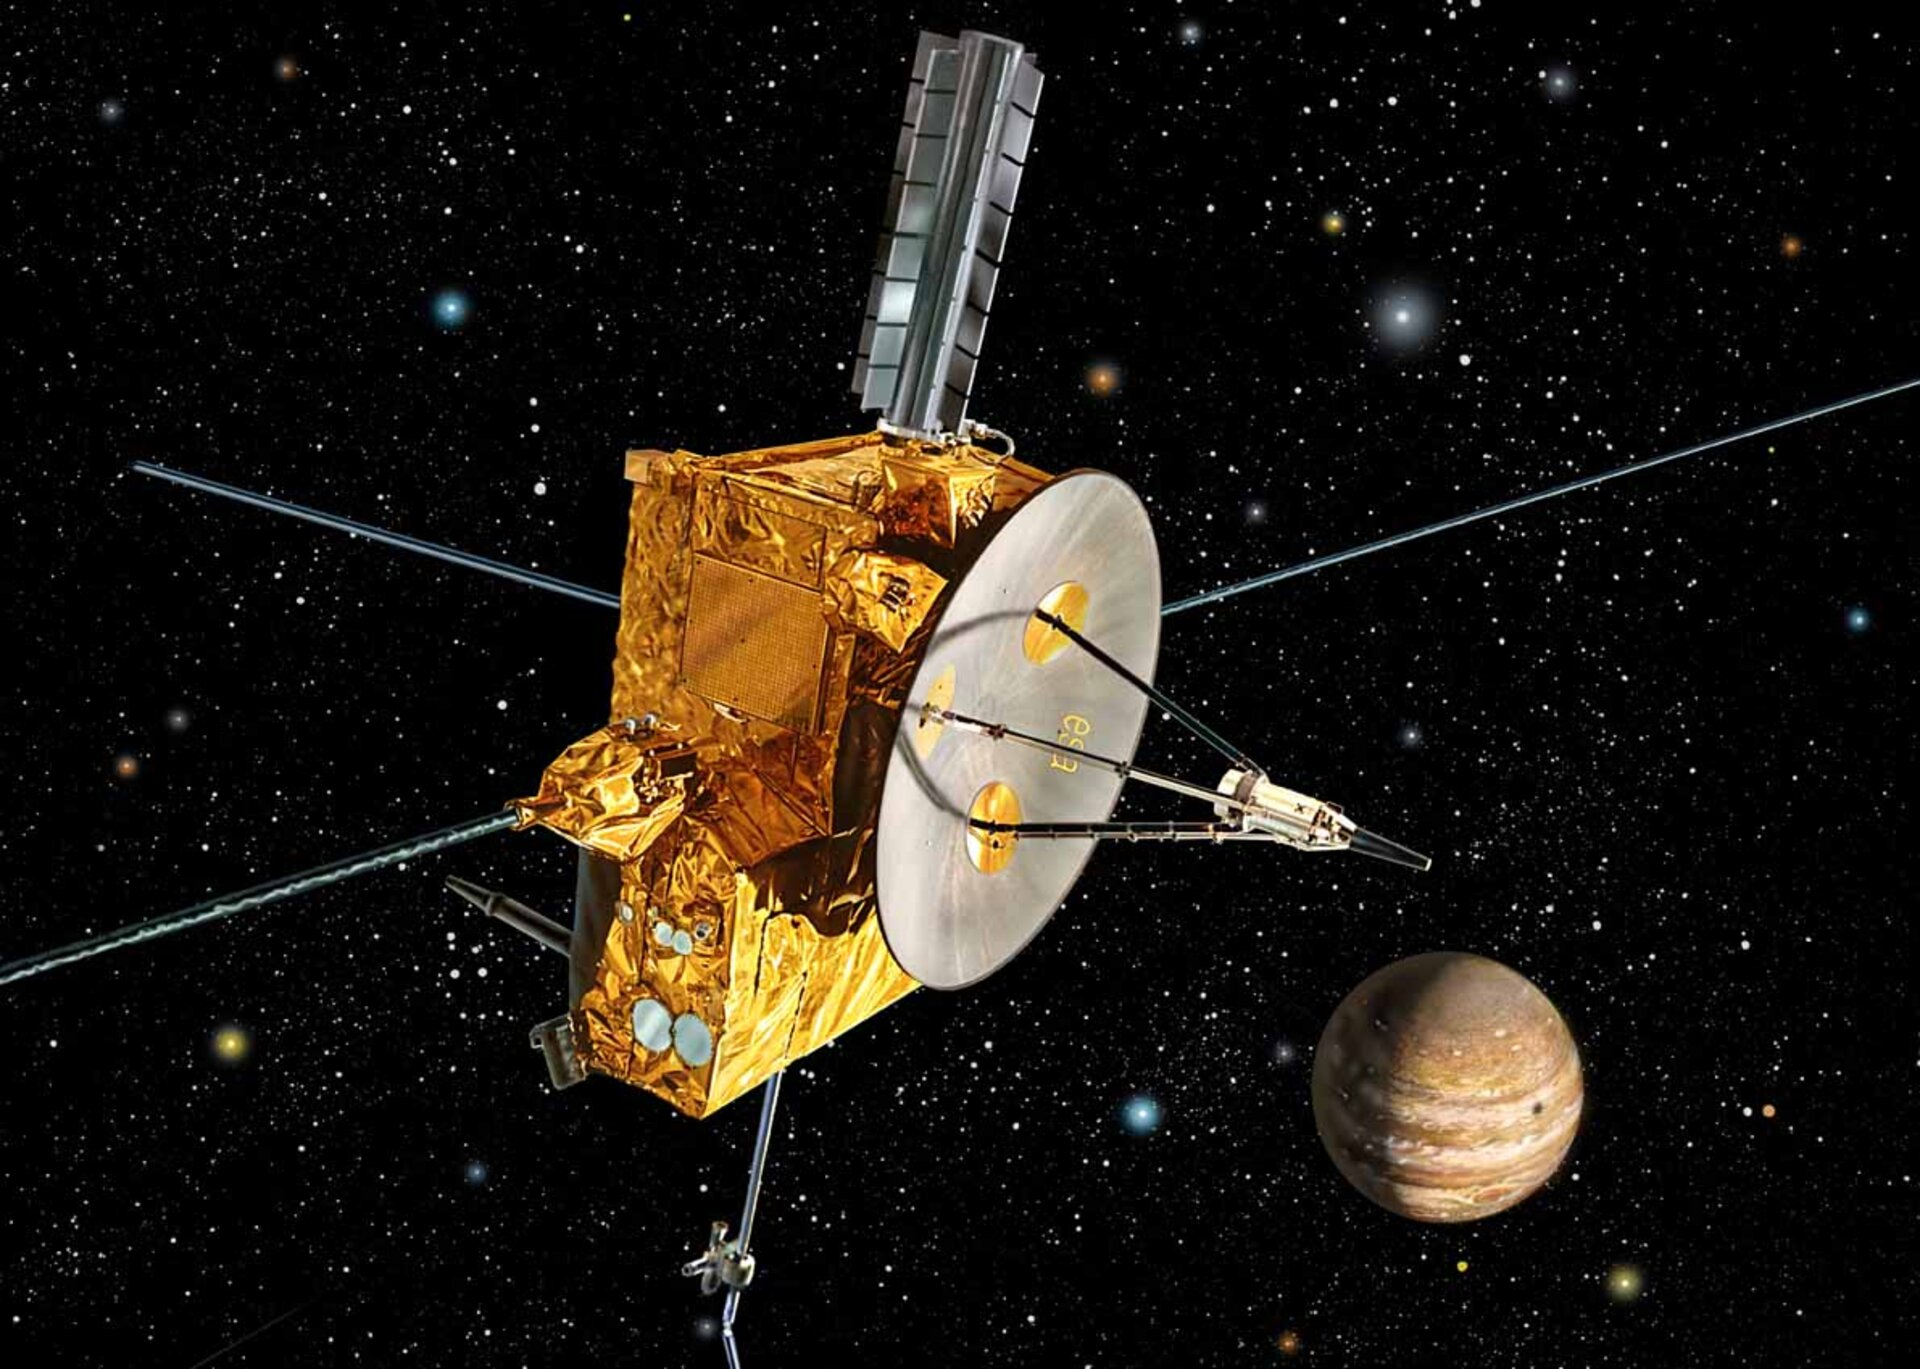 Ulysses at Jupiter encounter